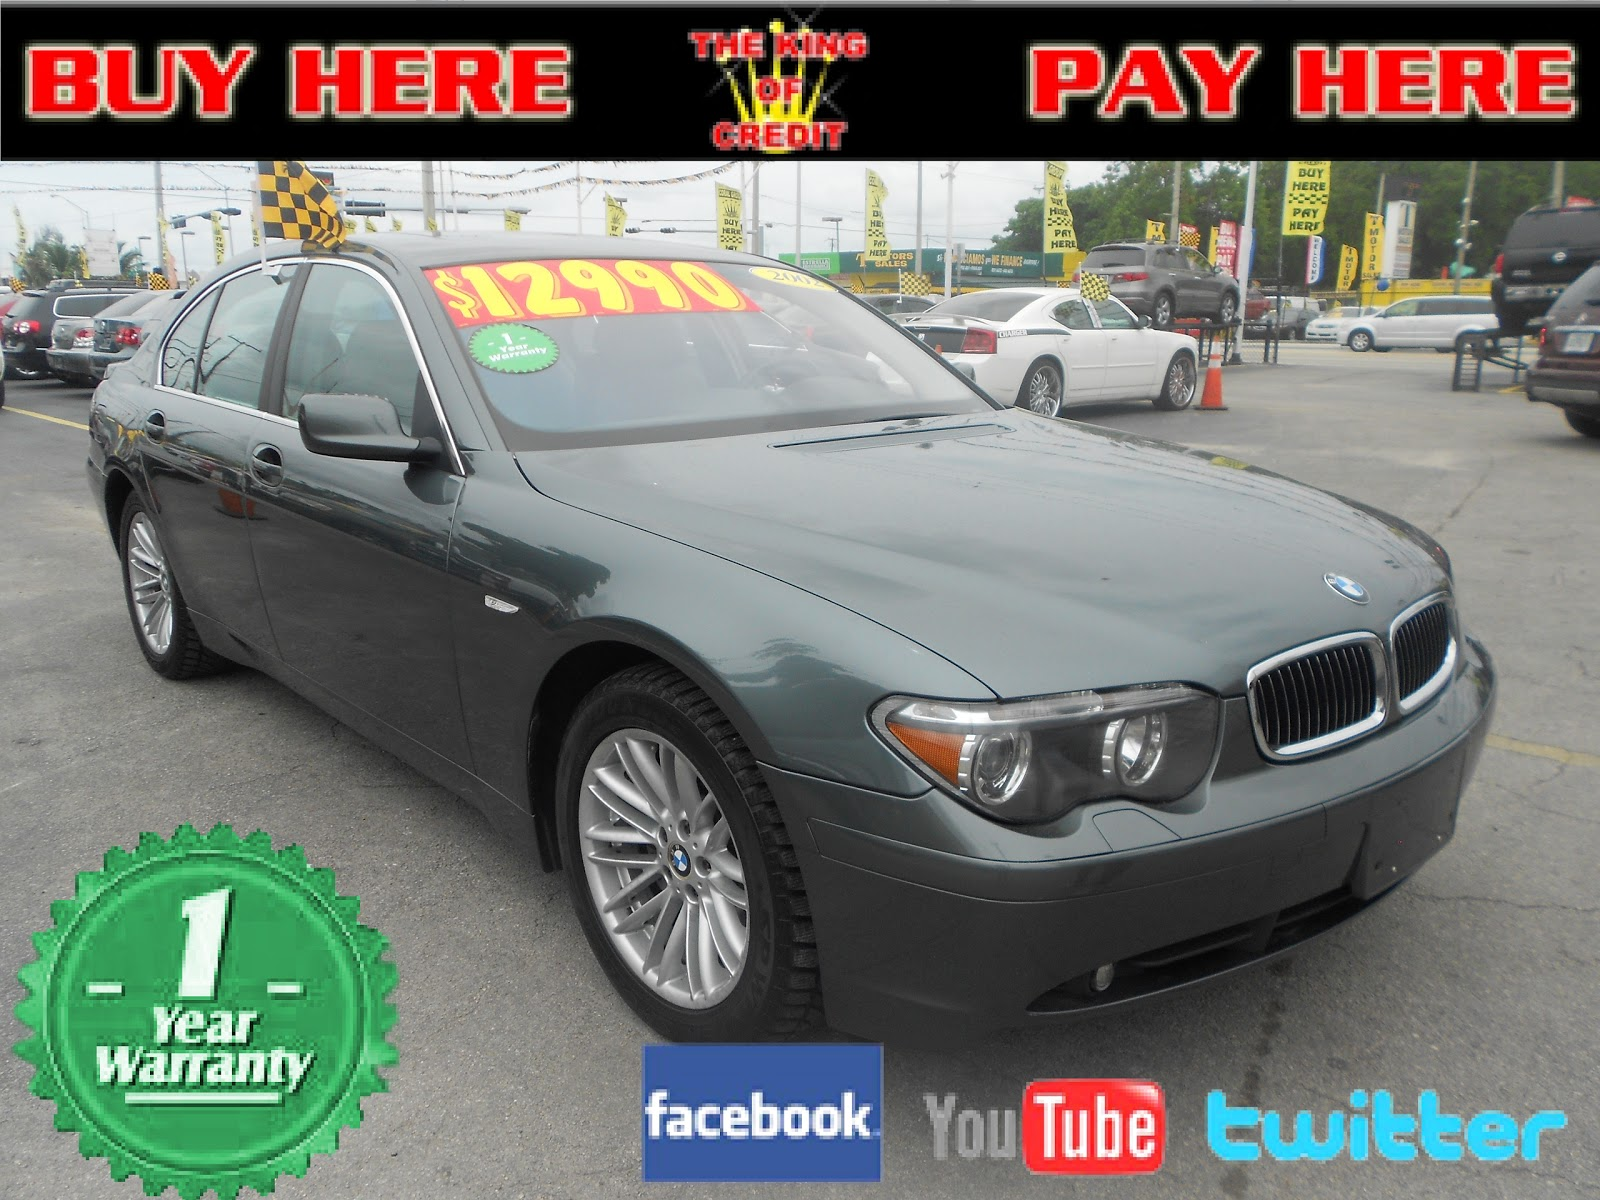 coral group miami used cars june 2012